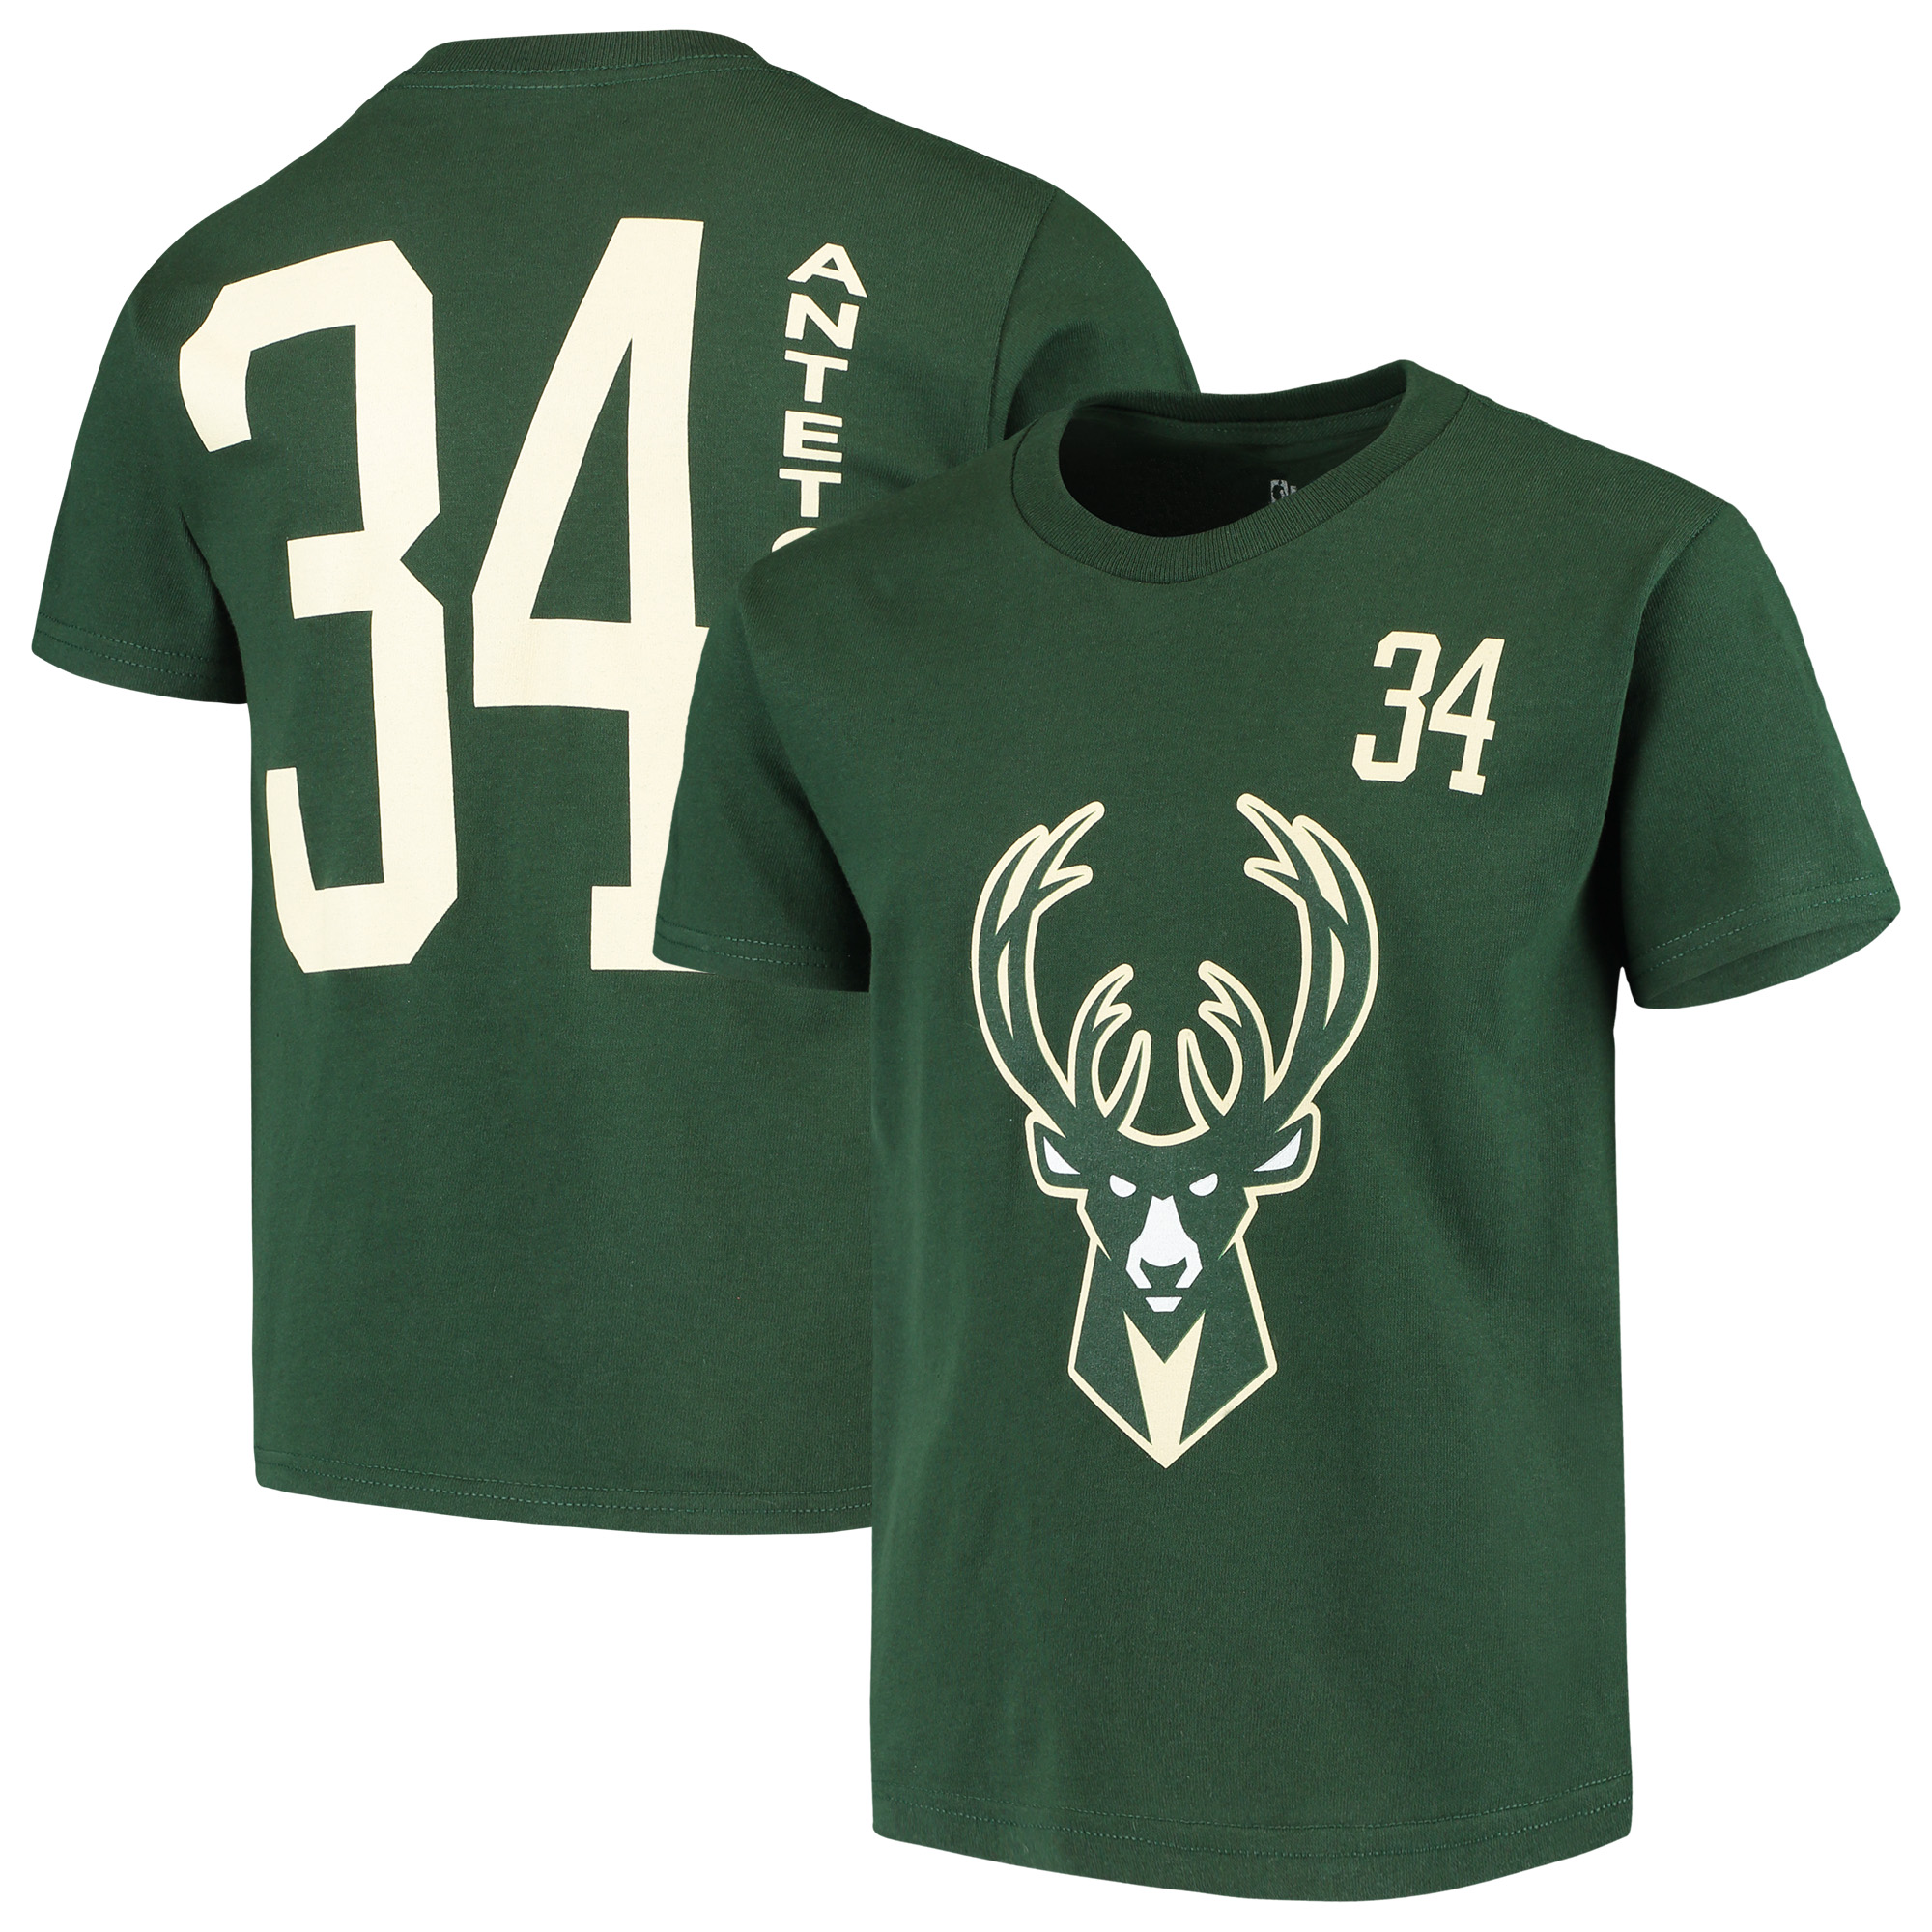 best service bb96f 9bc15 Giannis Antetokounmpo Milwaukee Bucks Youth Name & Number T-Shirt - Hunter  Green